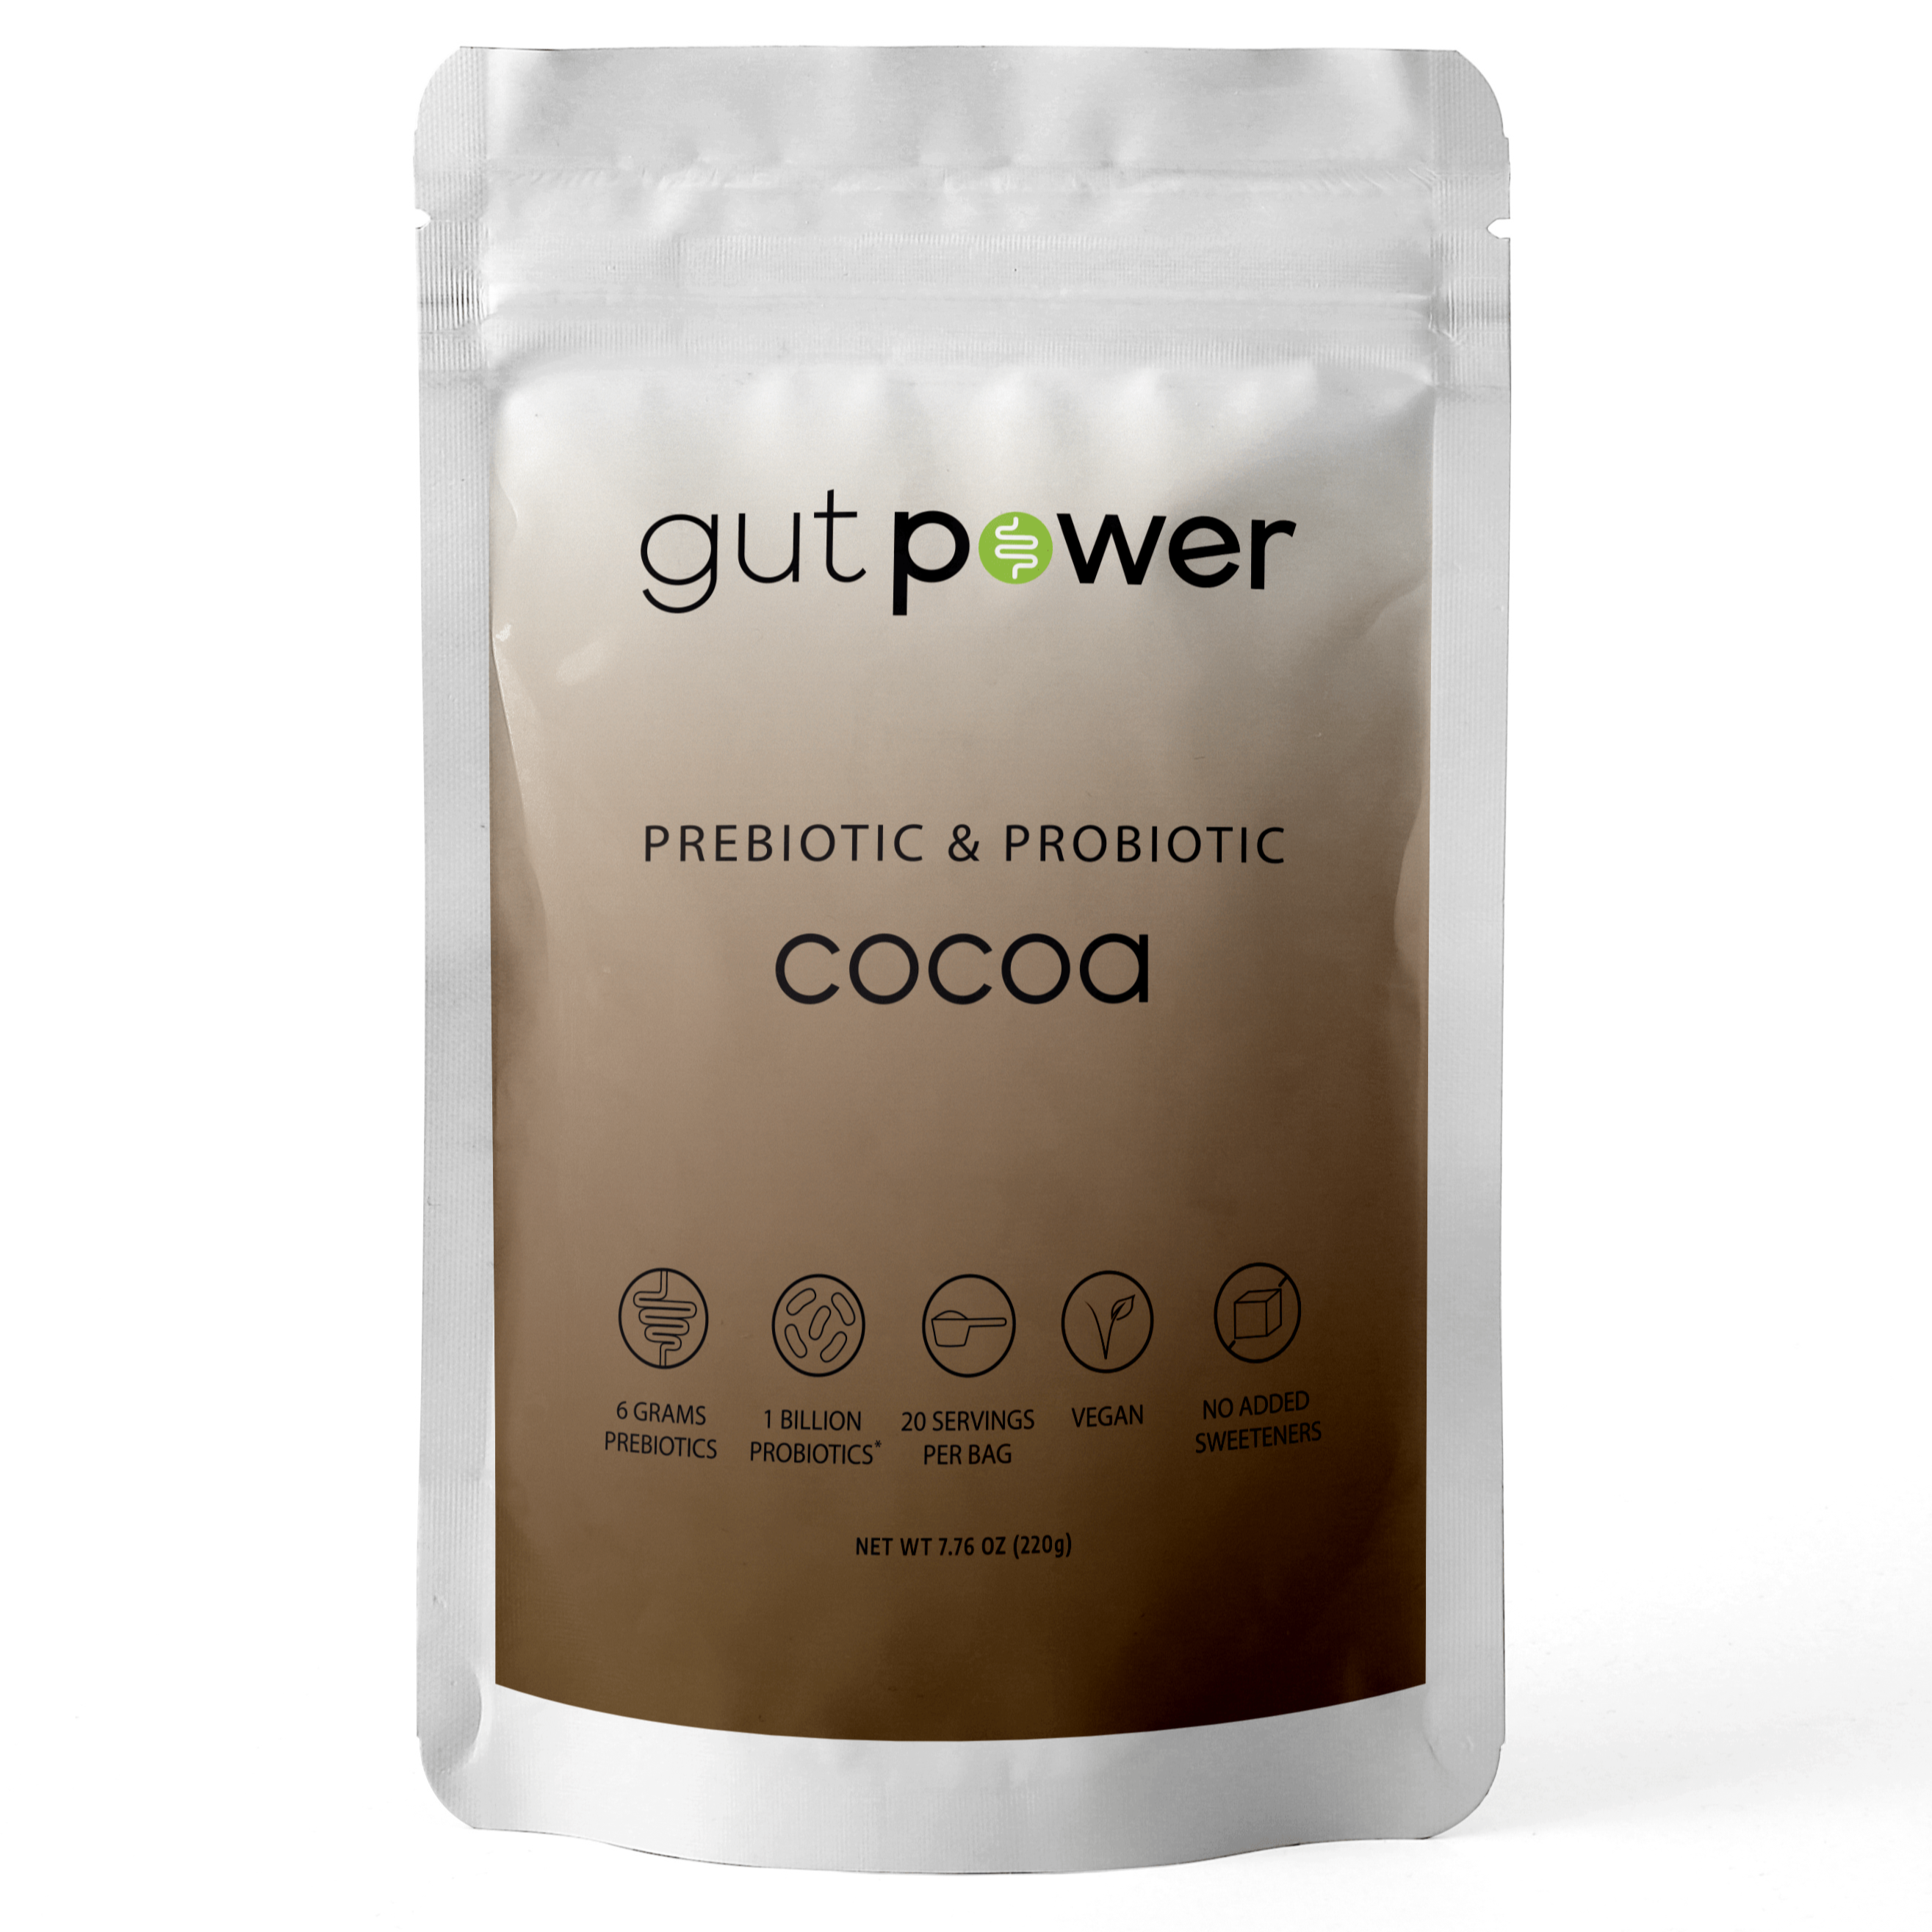 Gut Power Cocoa — Prebiotic and Probiotic Gut Health Drink Mix